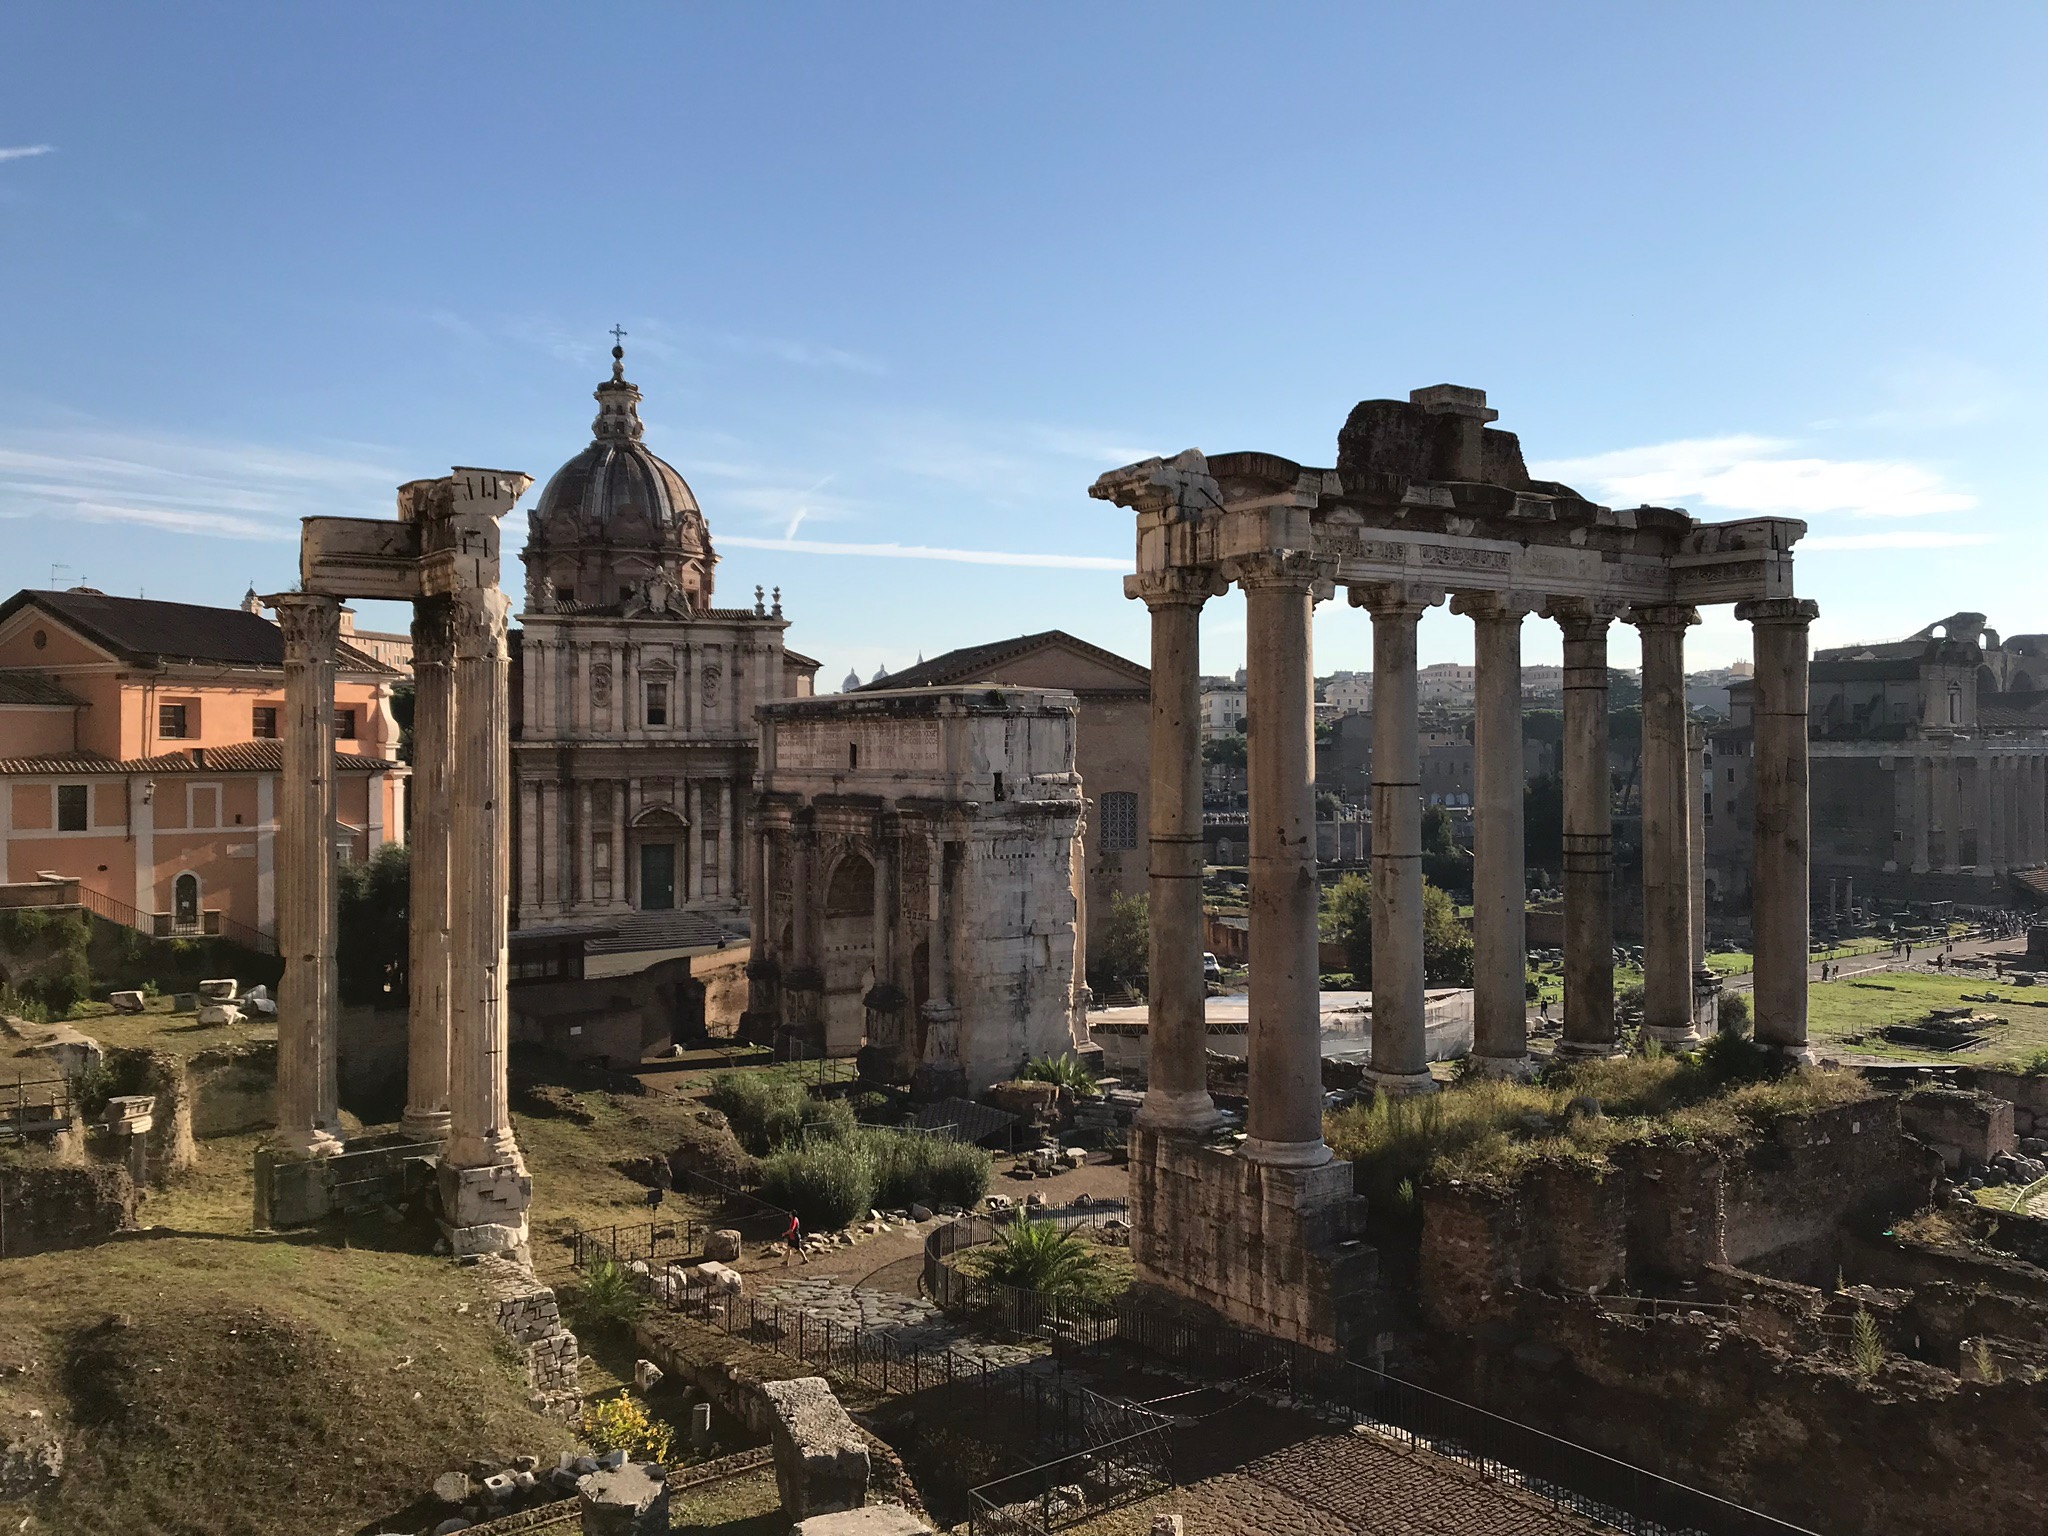 View of the Temple of Saturn at the Roman Forum